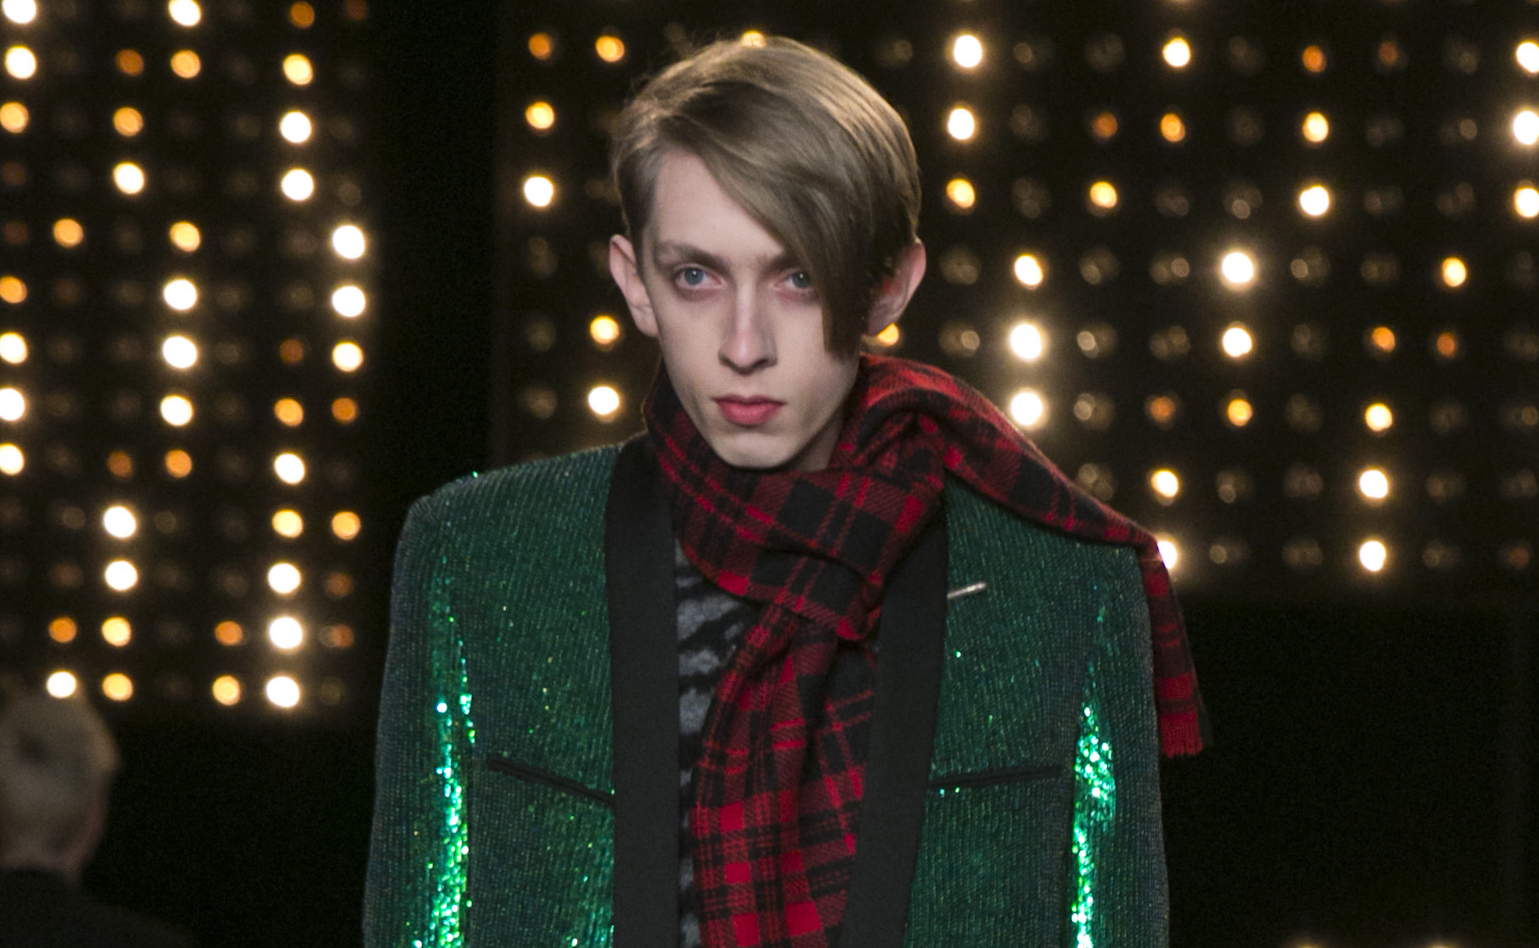 Saint Laurent, Fashion Show in Paris, Menswear Collection, Fall Winter 2014